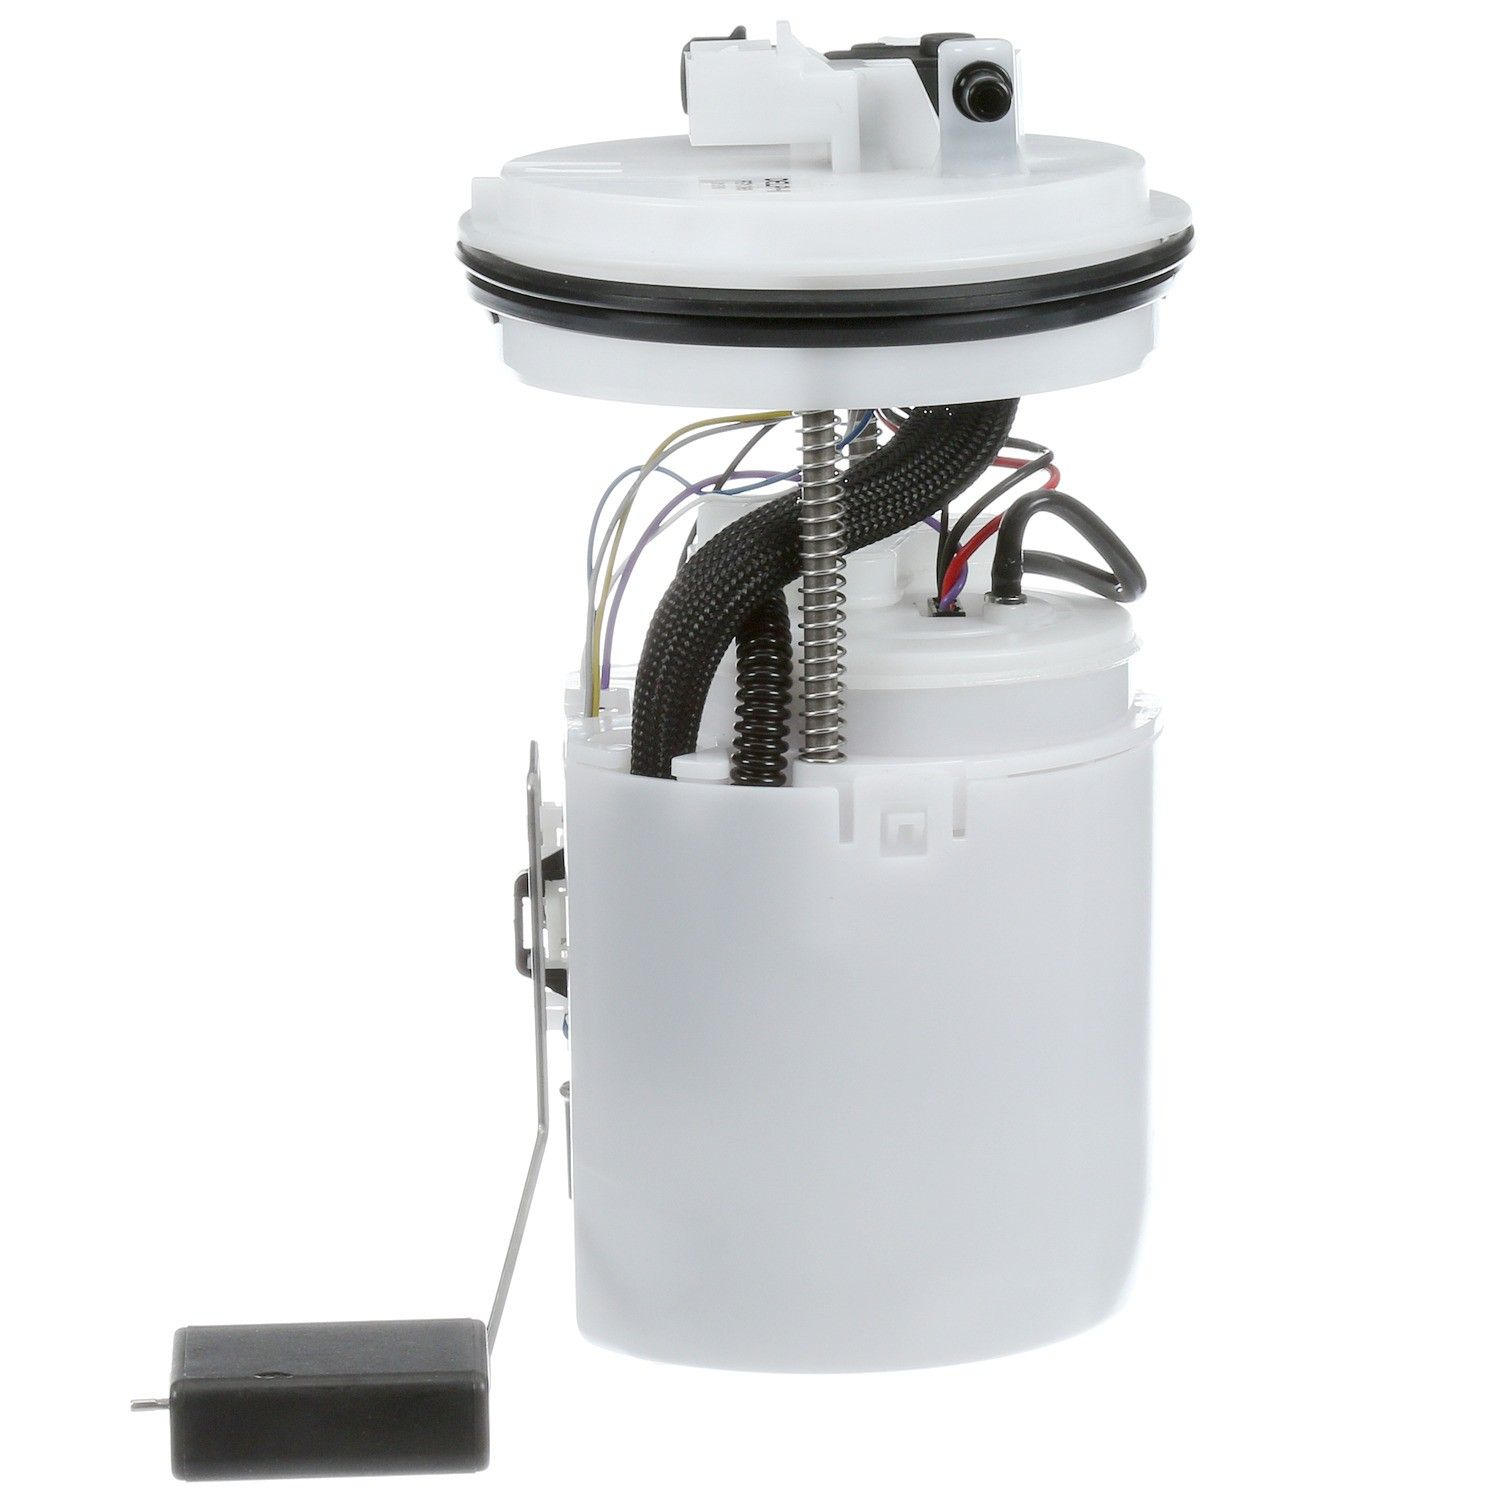 Chevrolet Aveo Fuel Pump Module Assembly Replacement Acdelco Filter 2004 4 Cyl 16l Delphi Fg1369 Strainer Is Inside The Once New Has Been Installed And